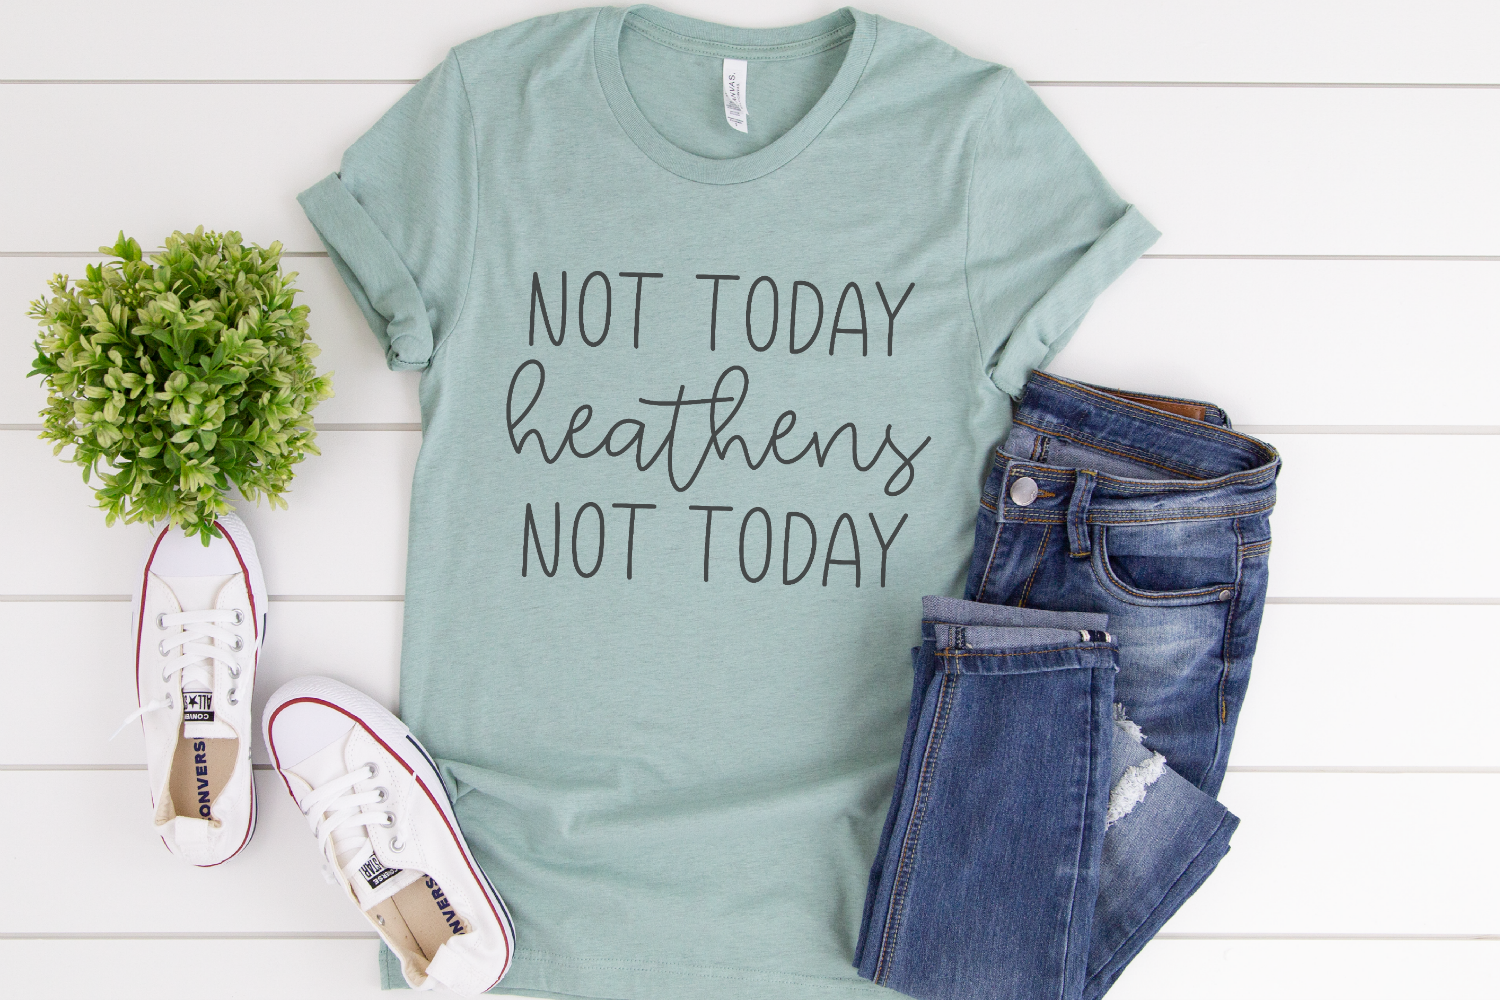 Chaos - Mom - Not Today Heathens Not Today SVG example image 2